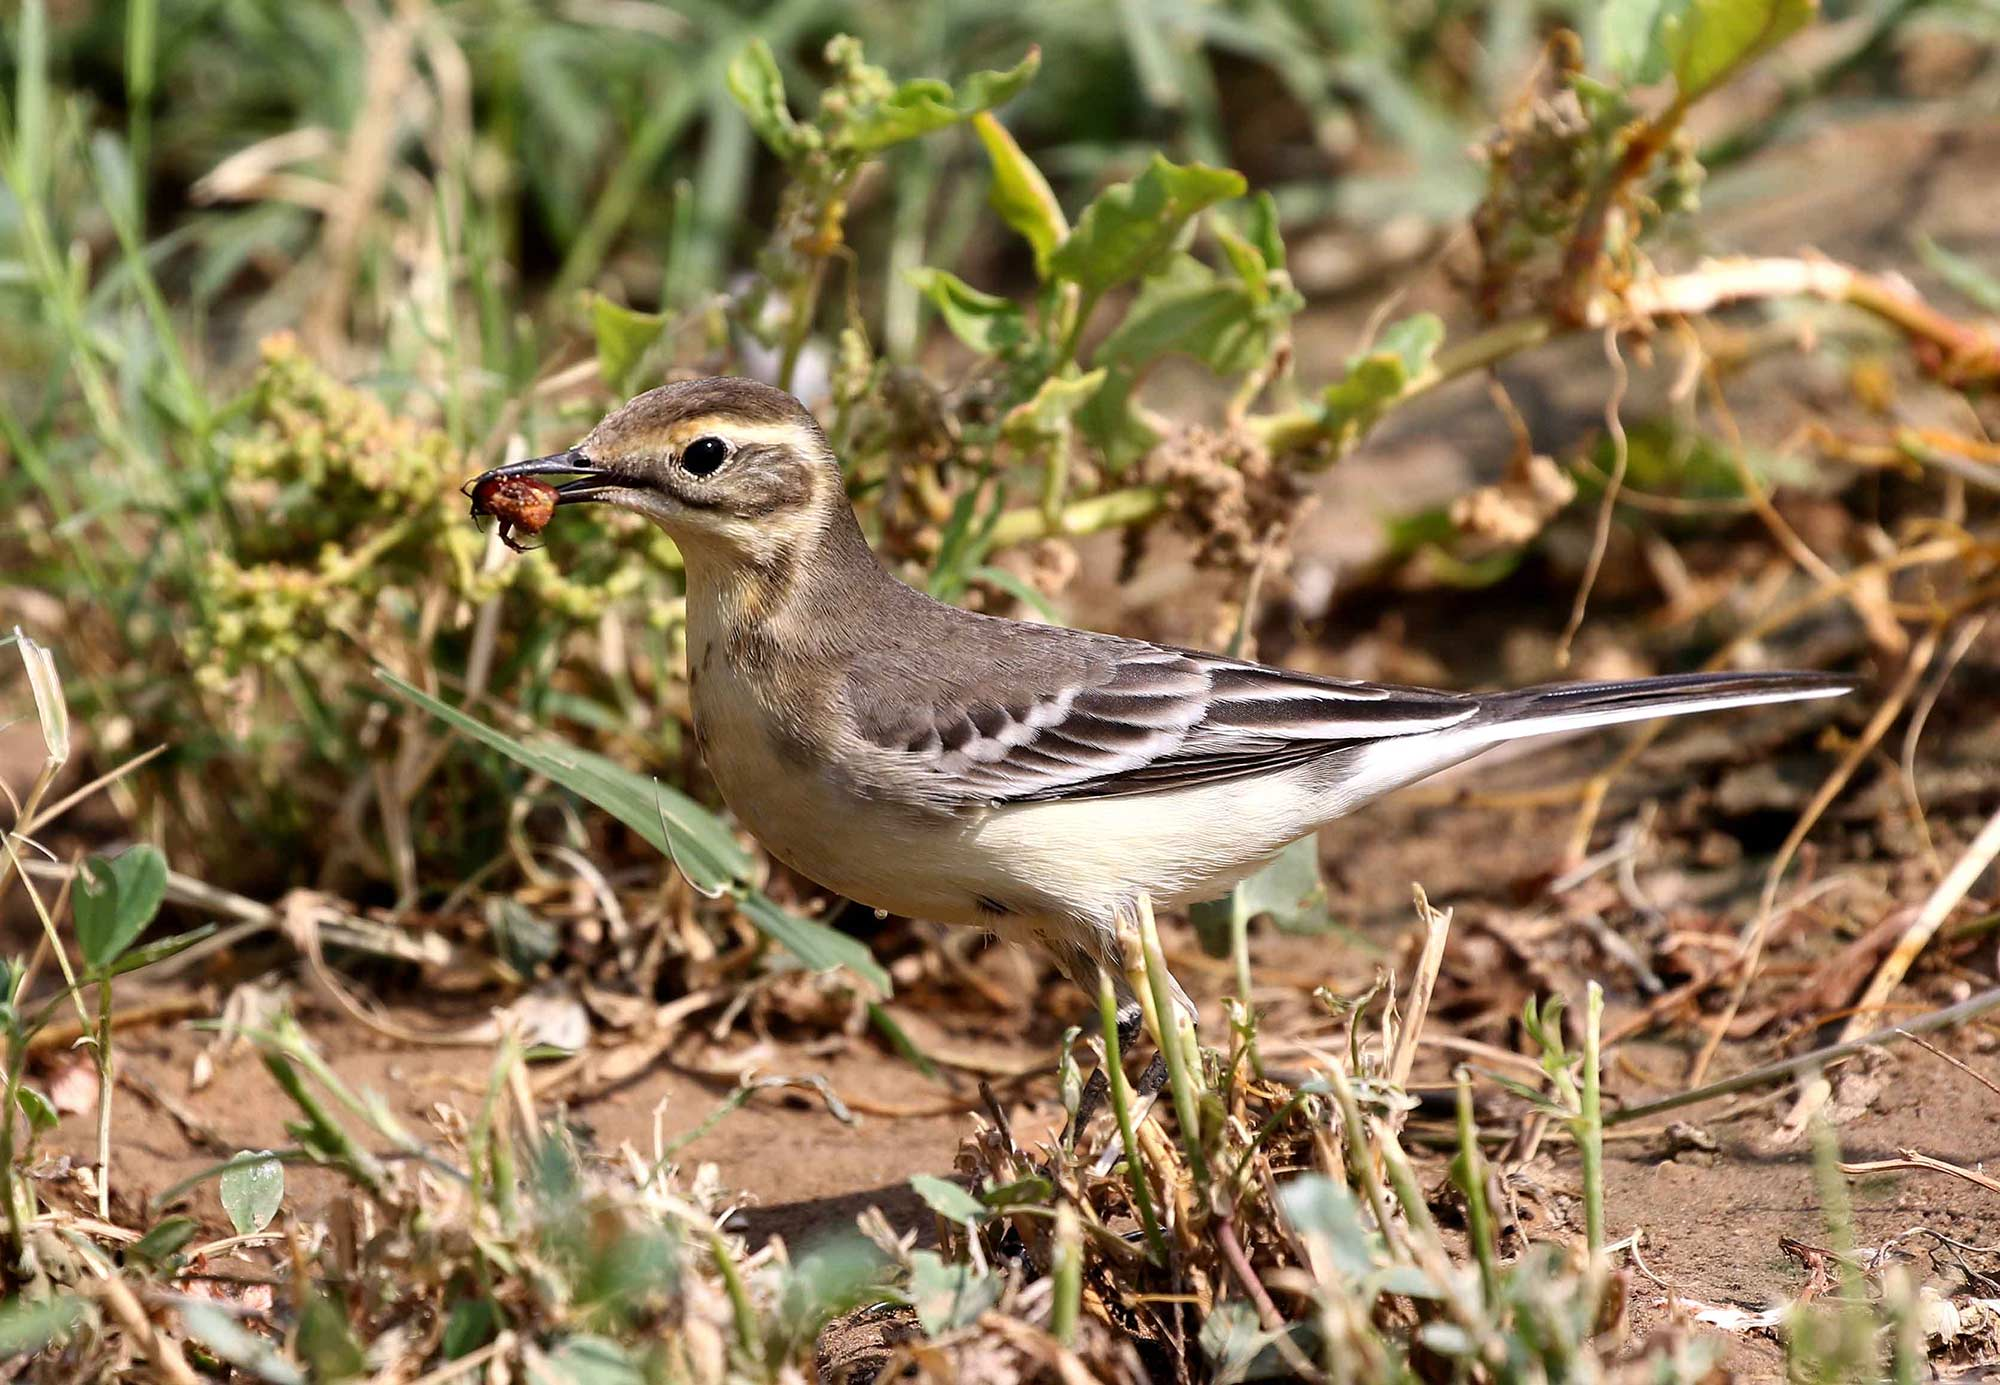 A Citrine Wagtail with a beetle between it beak